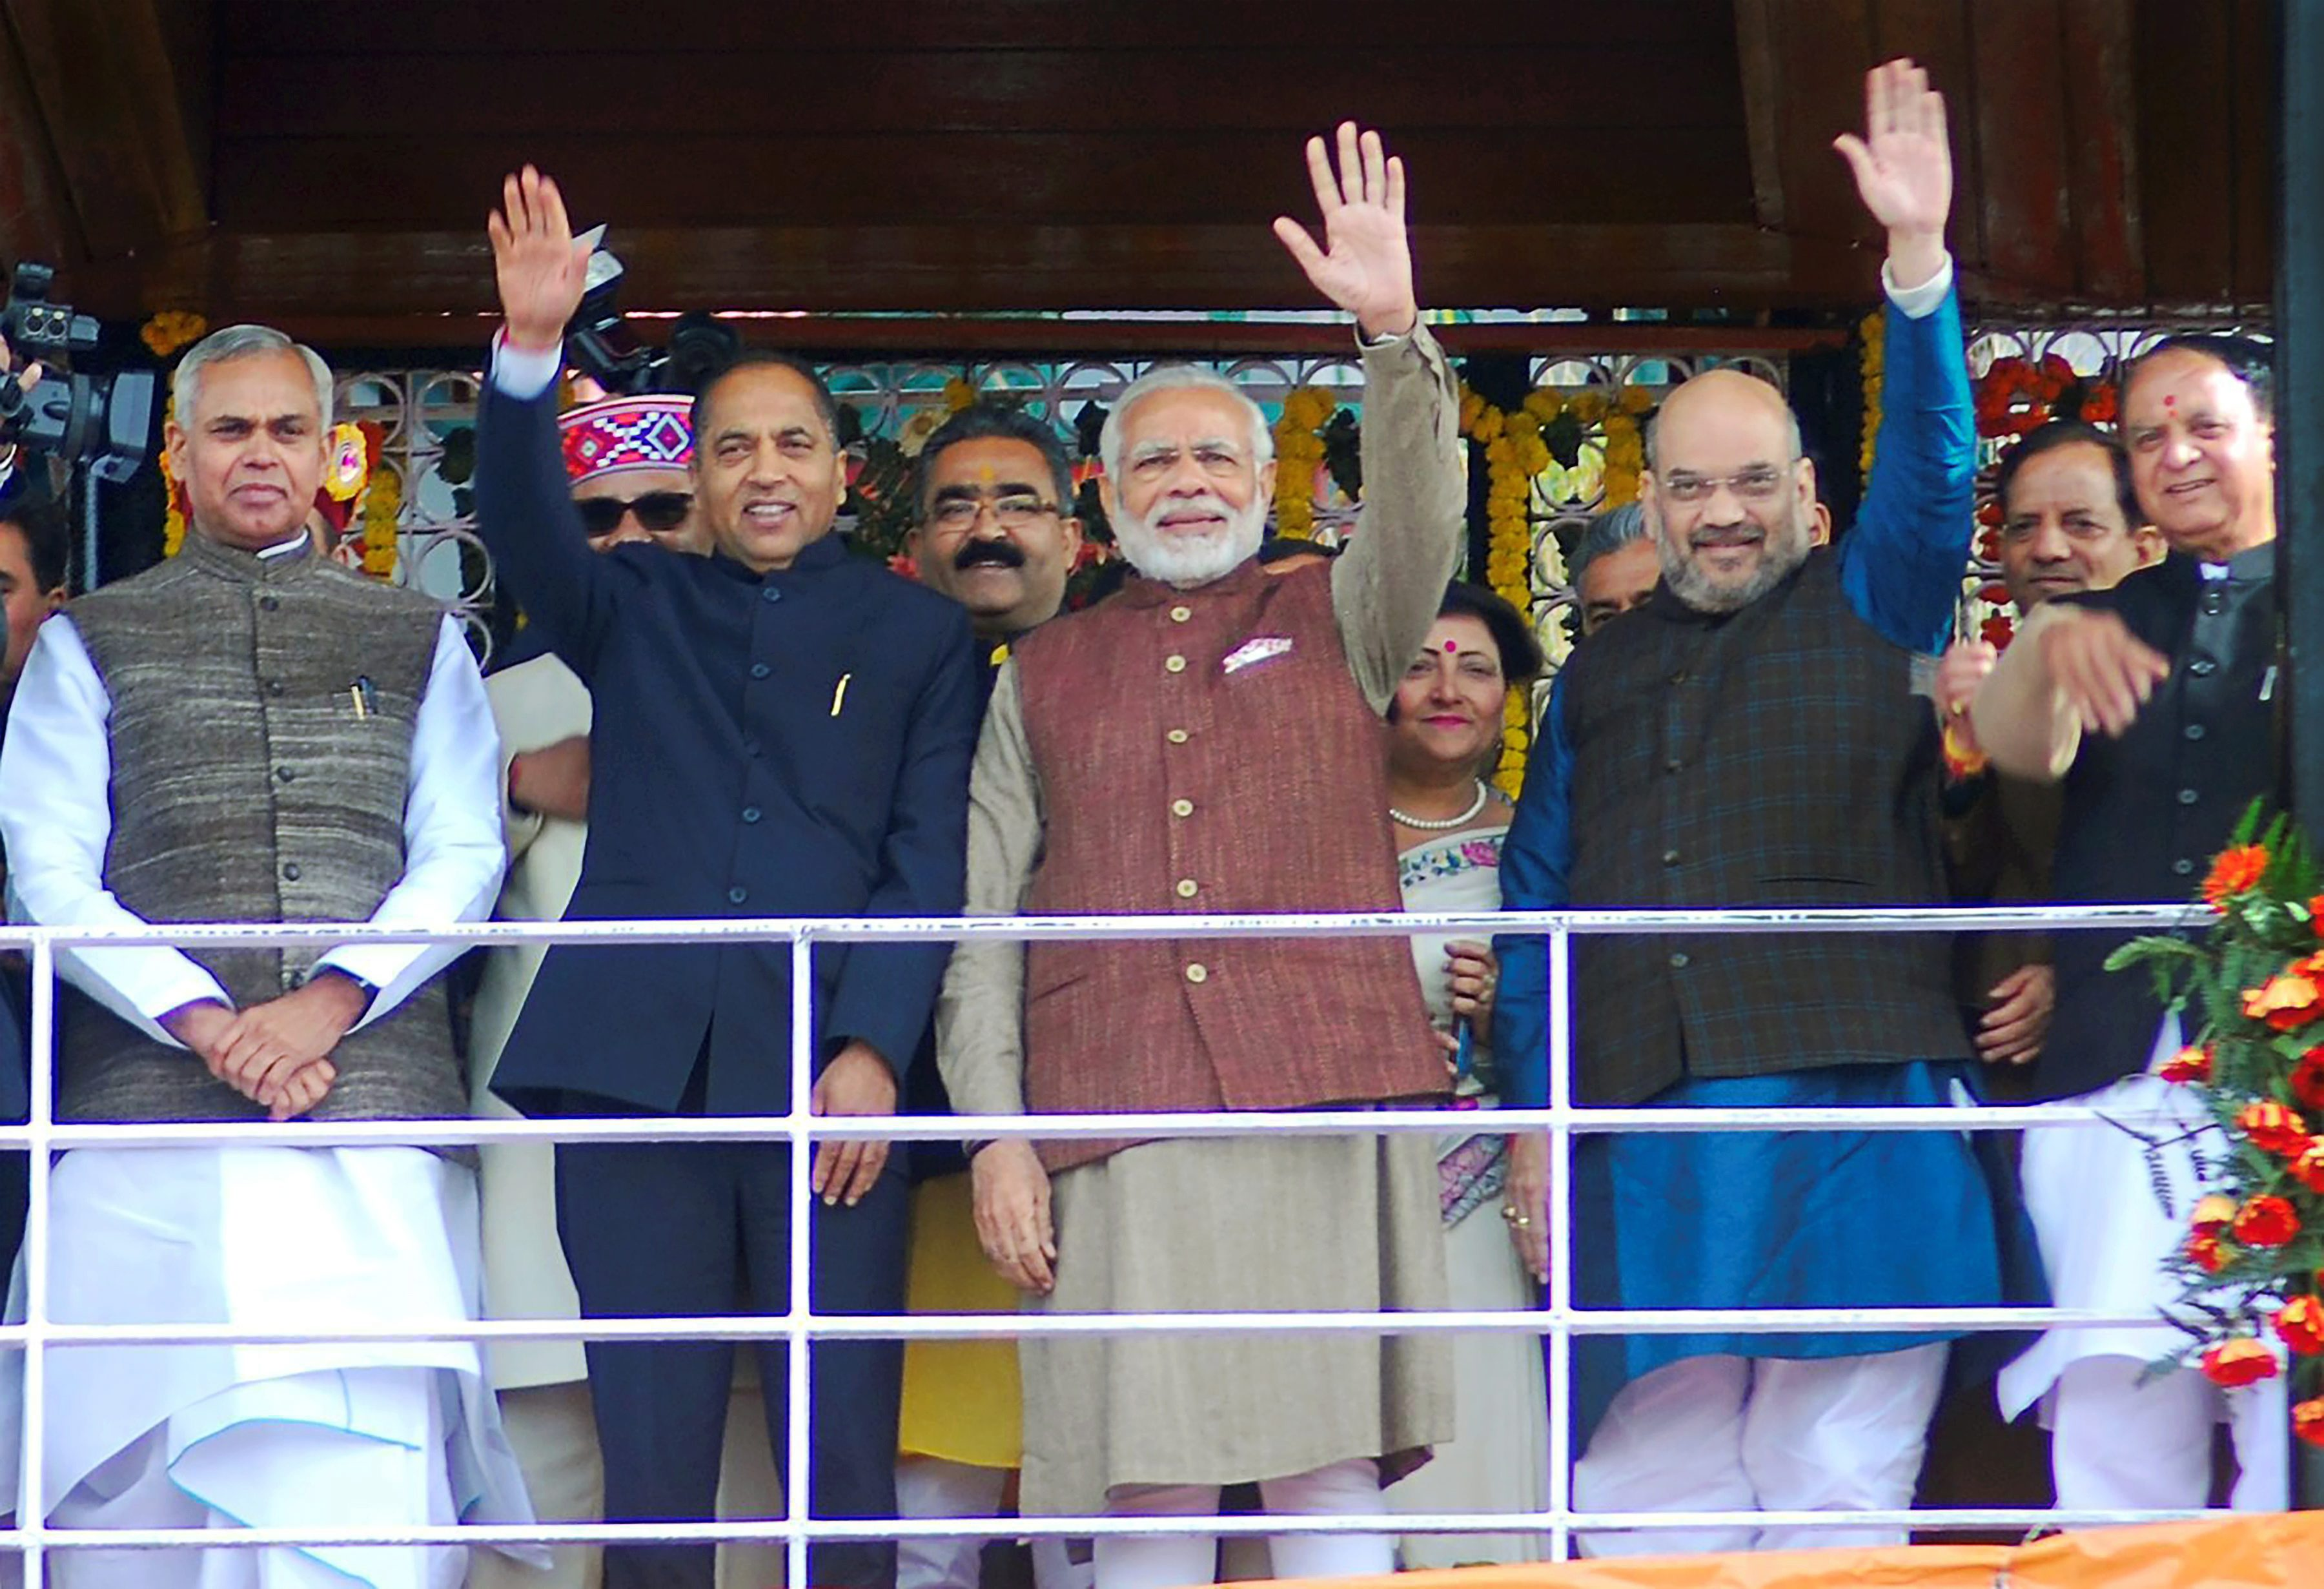 Shimla : Prime Minister Narendra Modi with New Chief Minister of Himachal Pradesh Jairam Thakur, BJP president Amit Shah and Governor of Himachal Pardesh Acharya Devvrat after the swearing-in ceremony in Shimla on Wednesday.PTI Photo (PTI12_27_2017_000022B) *** Local Caption ***